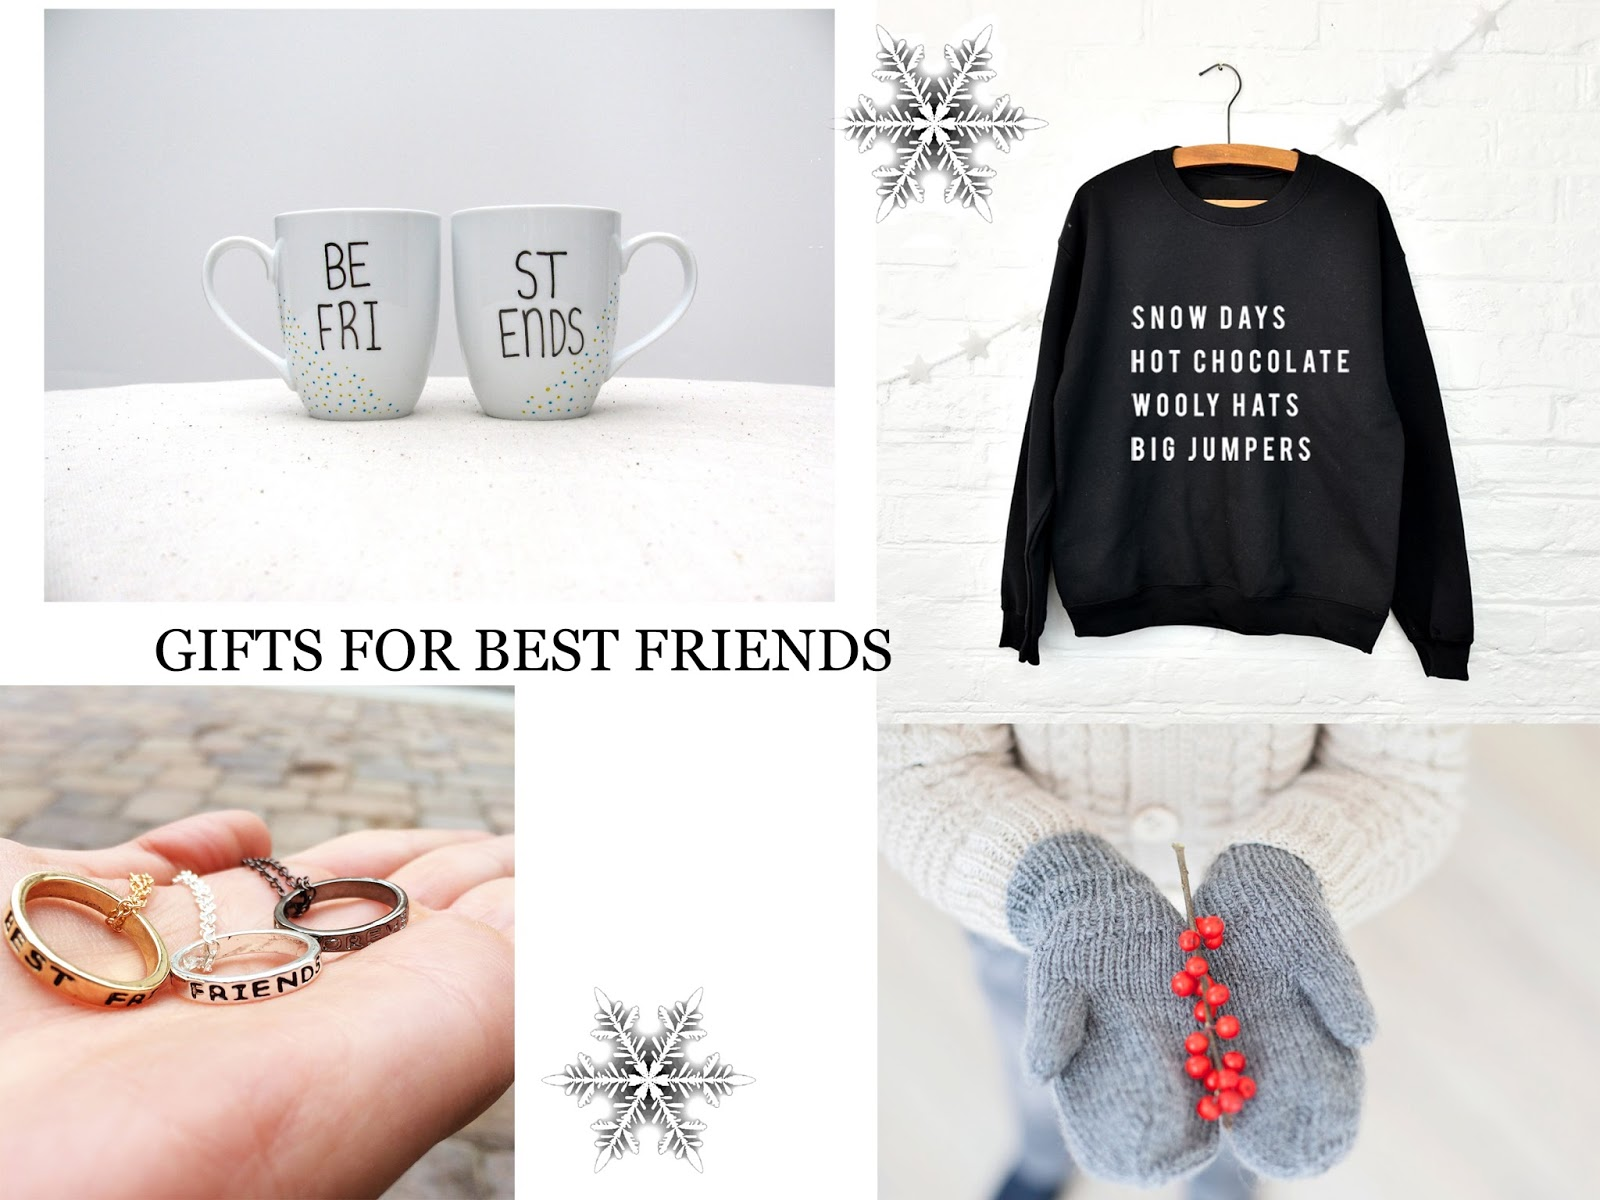 Skai - Lifestyle Blog: Gift Guide: Best Friend